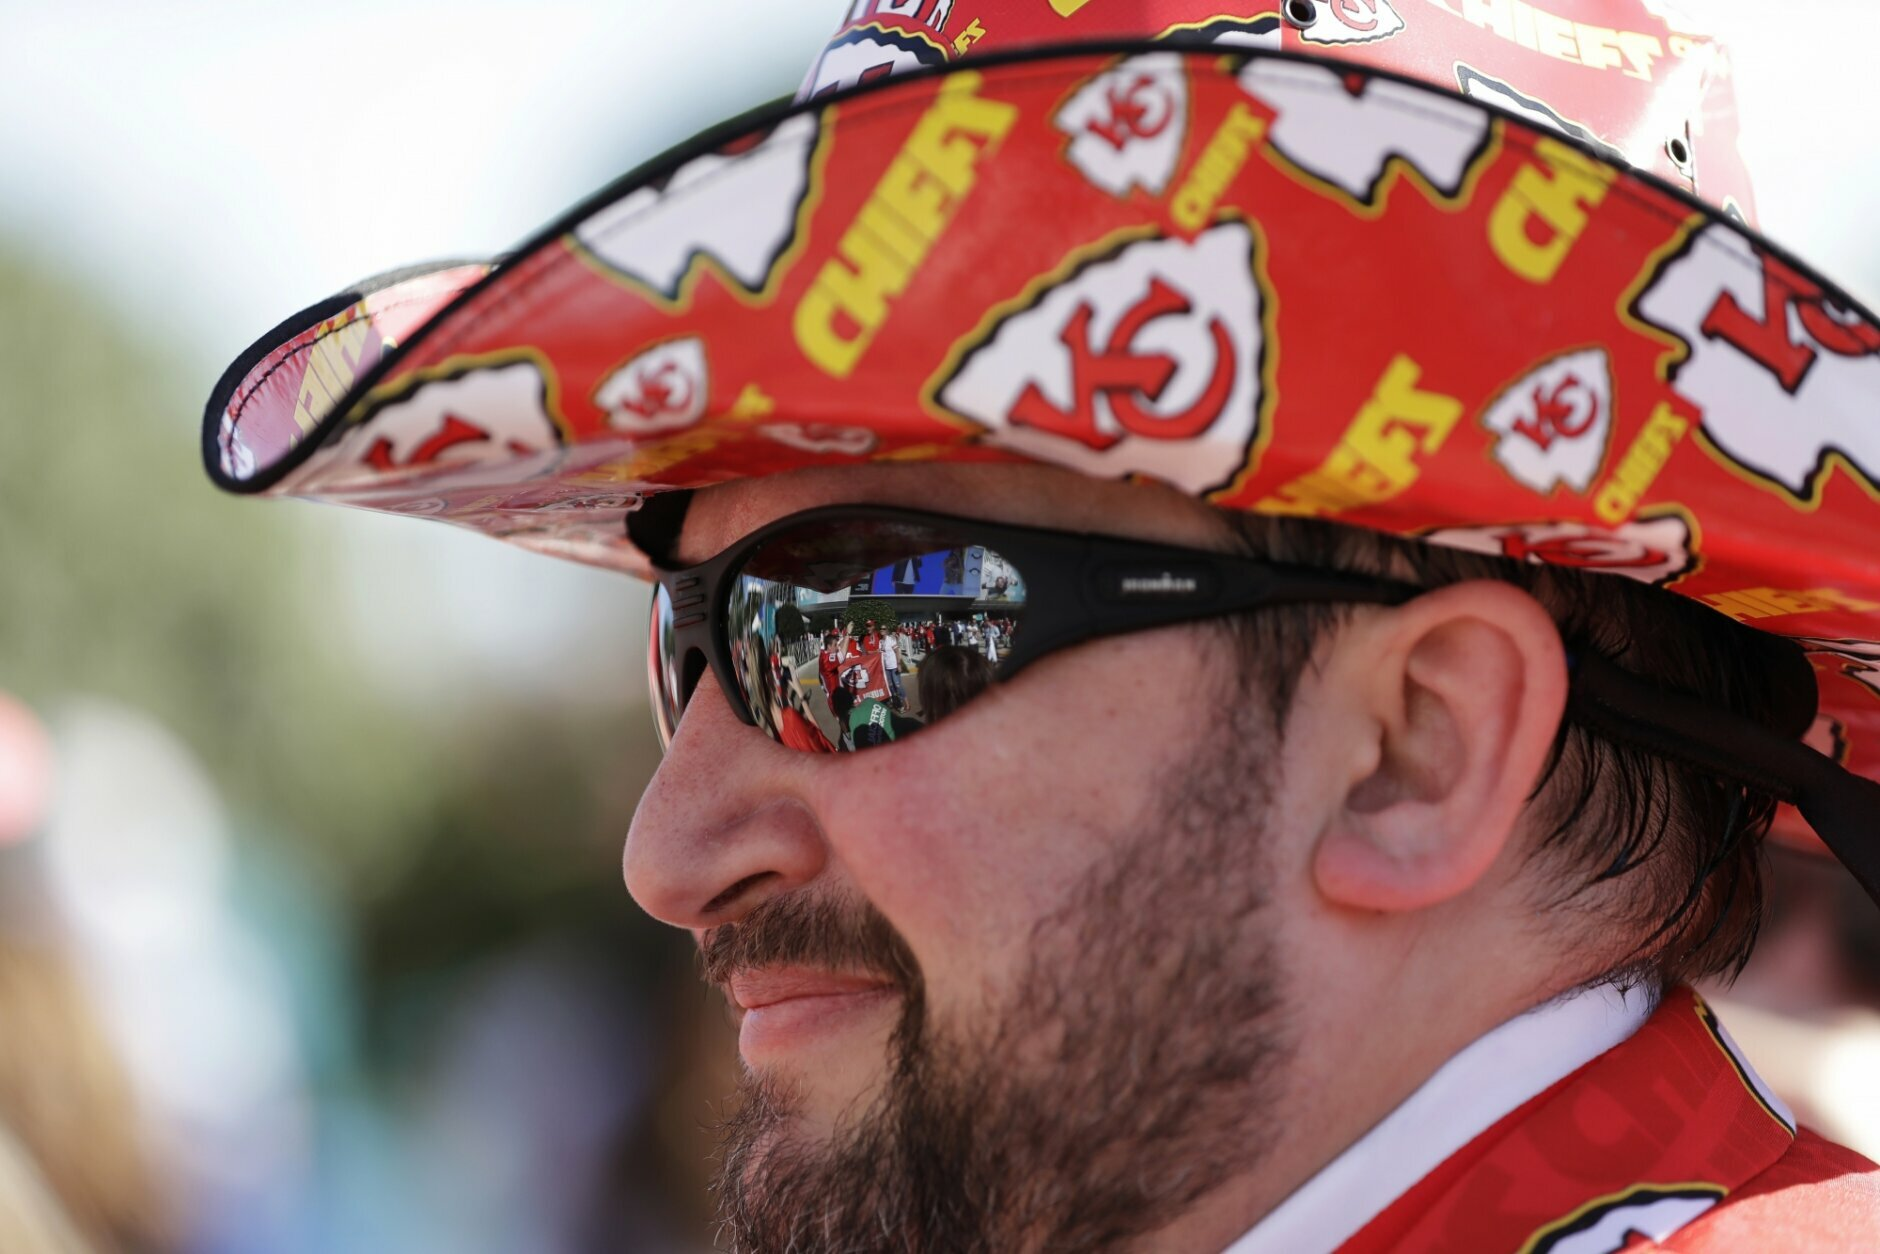 Kansas City Chiefs fan Cameron Sowder arrives before the NFL Super Bowl 54 football game between the San Francisco 49ers and Kansas City Chiefs Sunday, Feb. 2, 2020, in Miami Gardens, Fla. (AP Photo/Mark Humphrey)